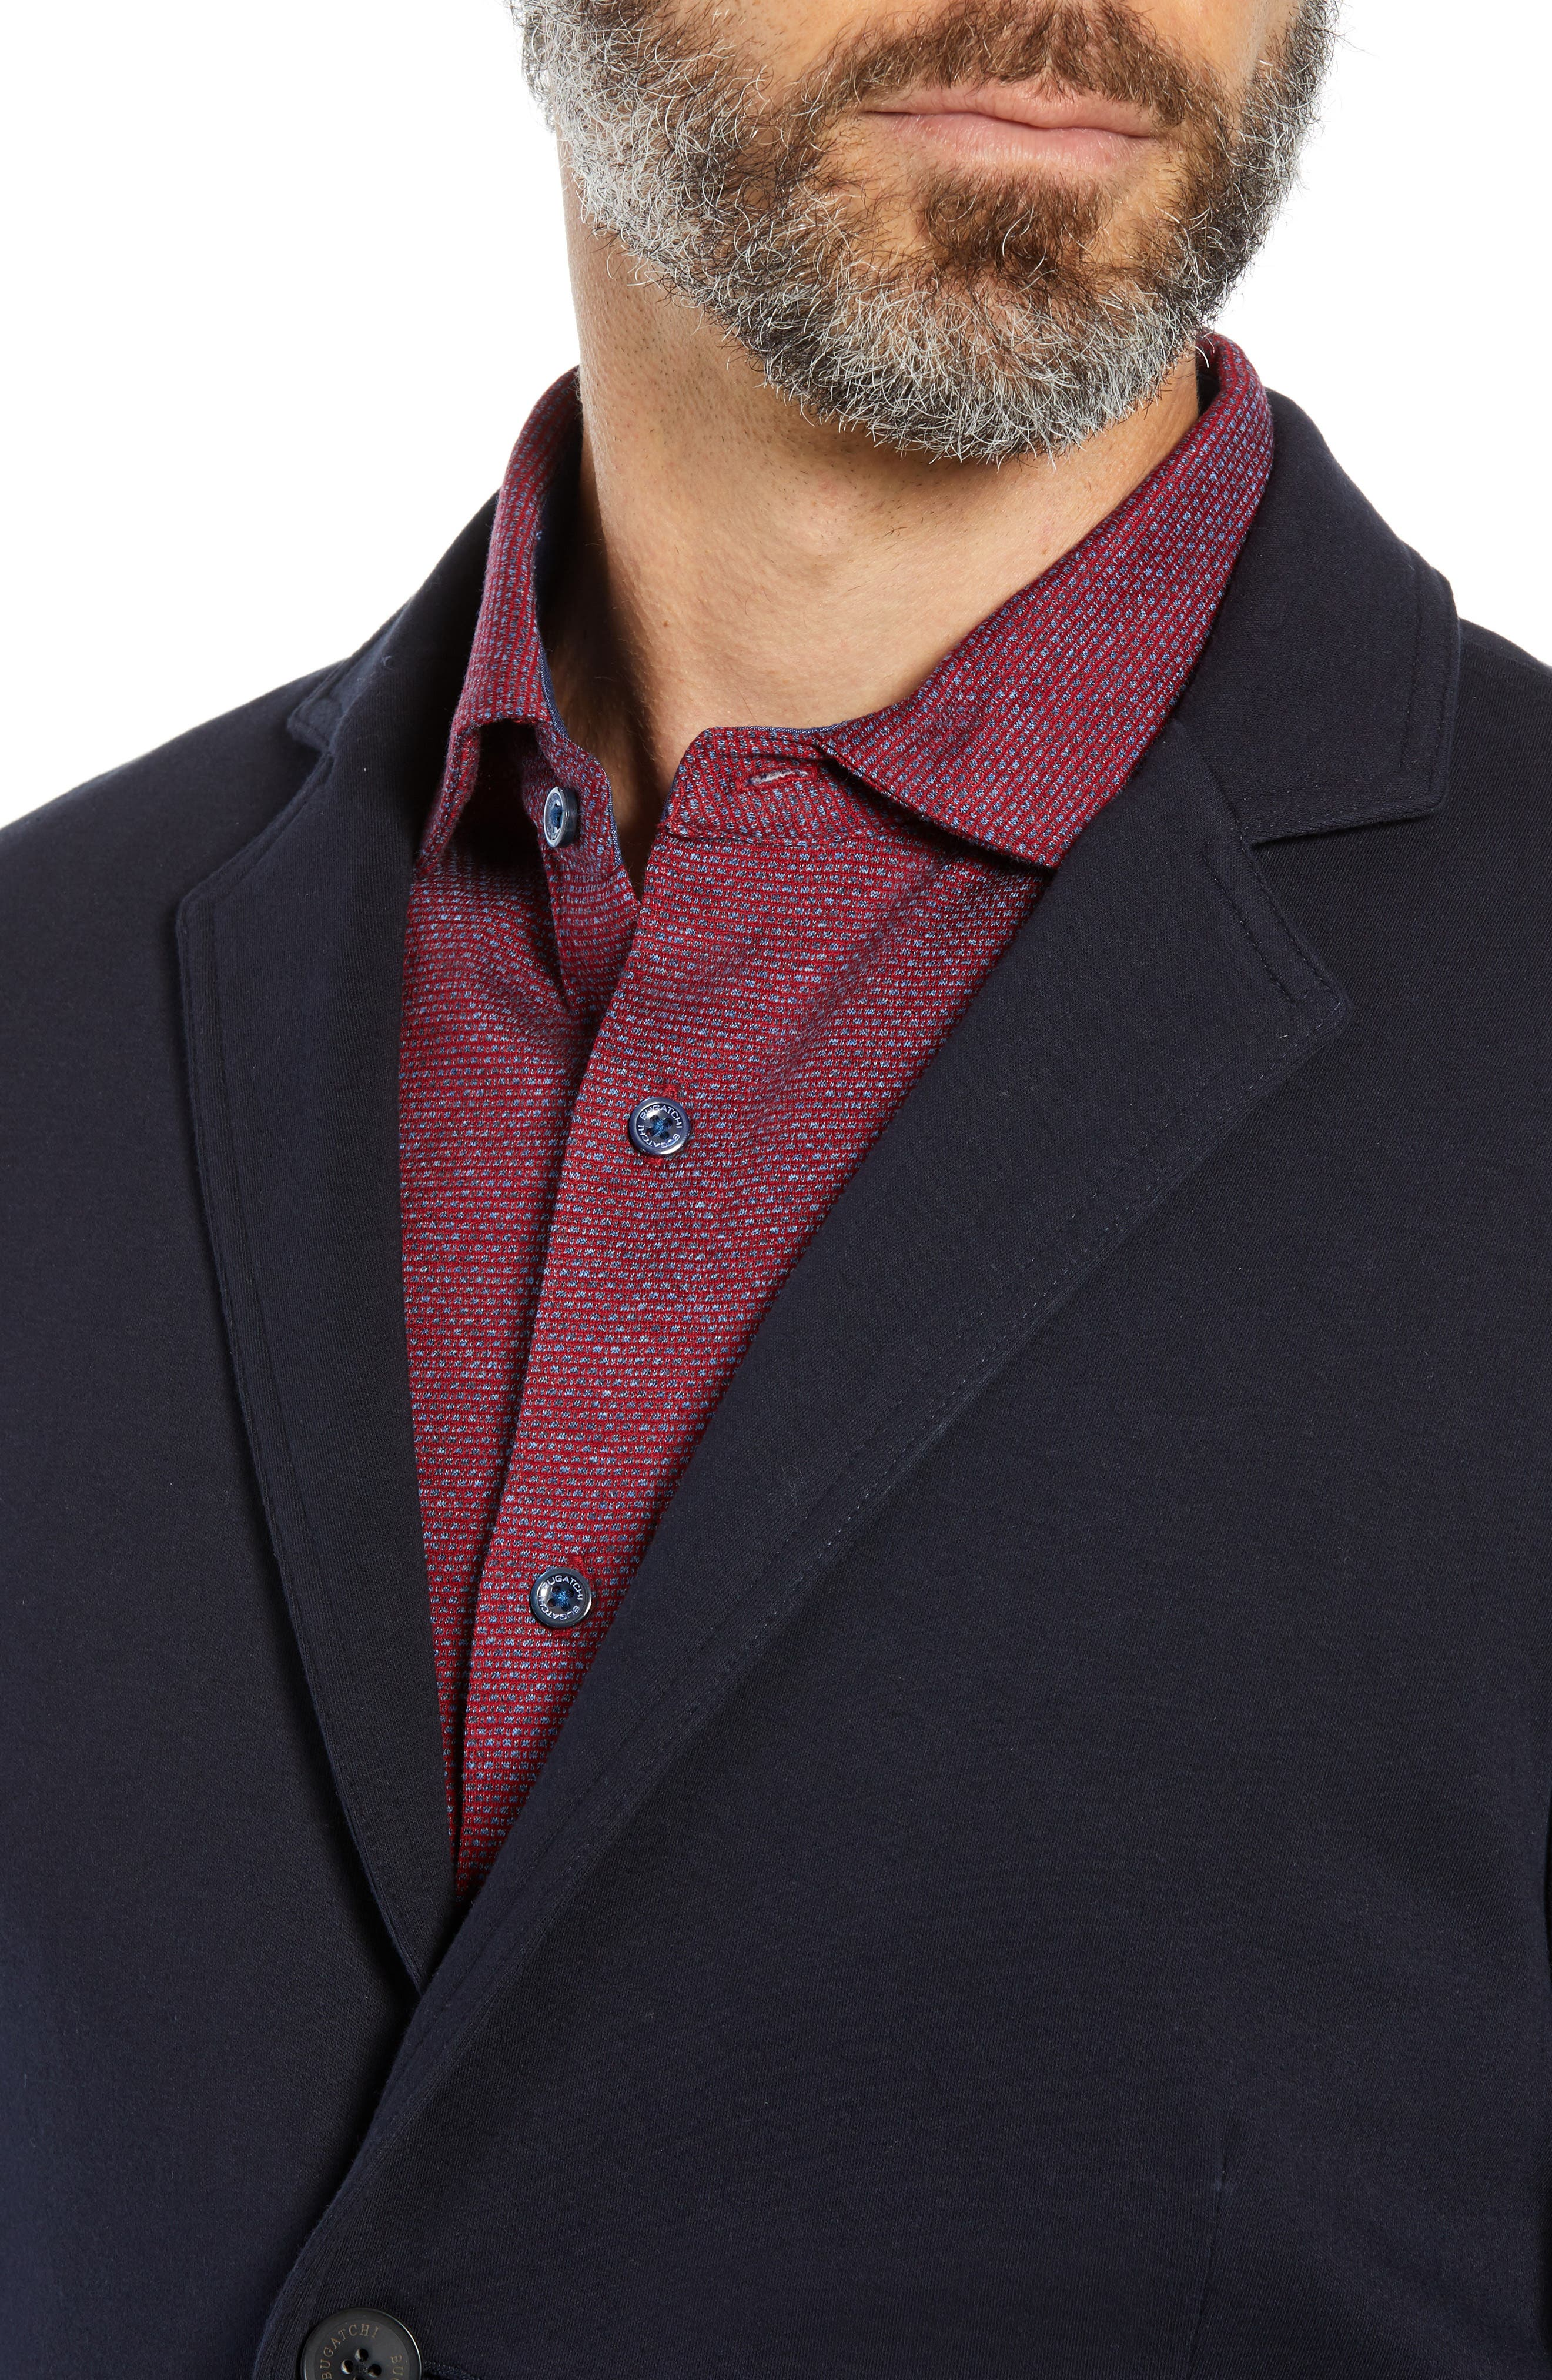 Regular Fit Stretch Cotton Blazer,                             Alternate thumbnail 4, color,                             NAVY